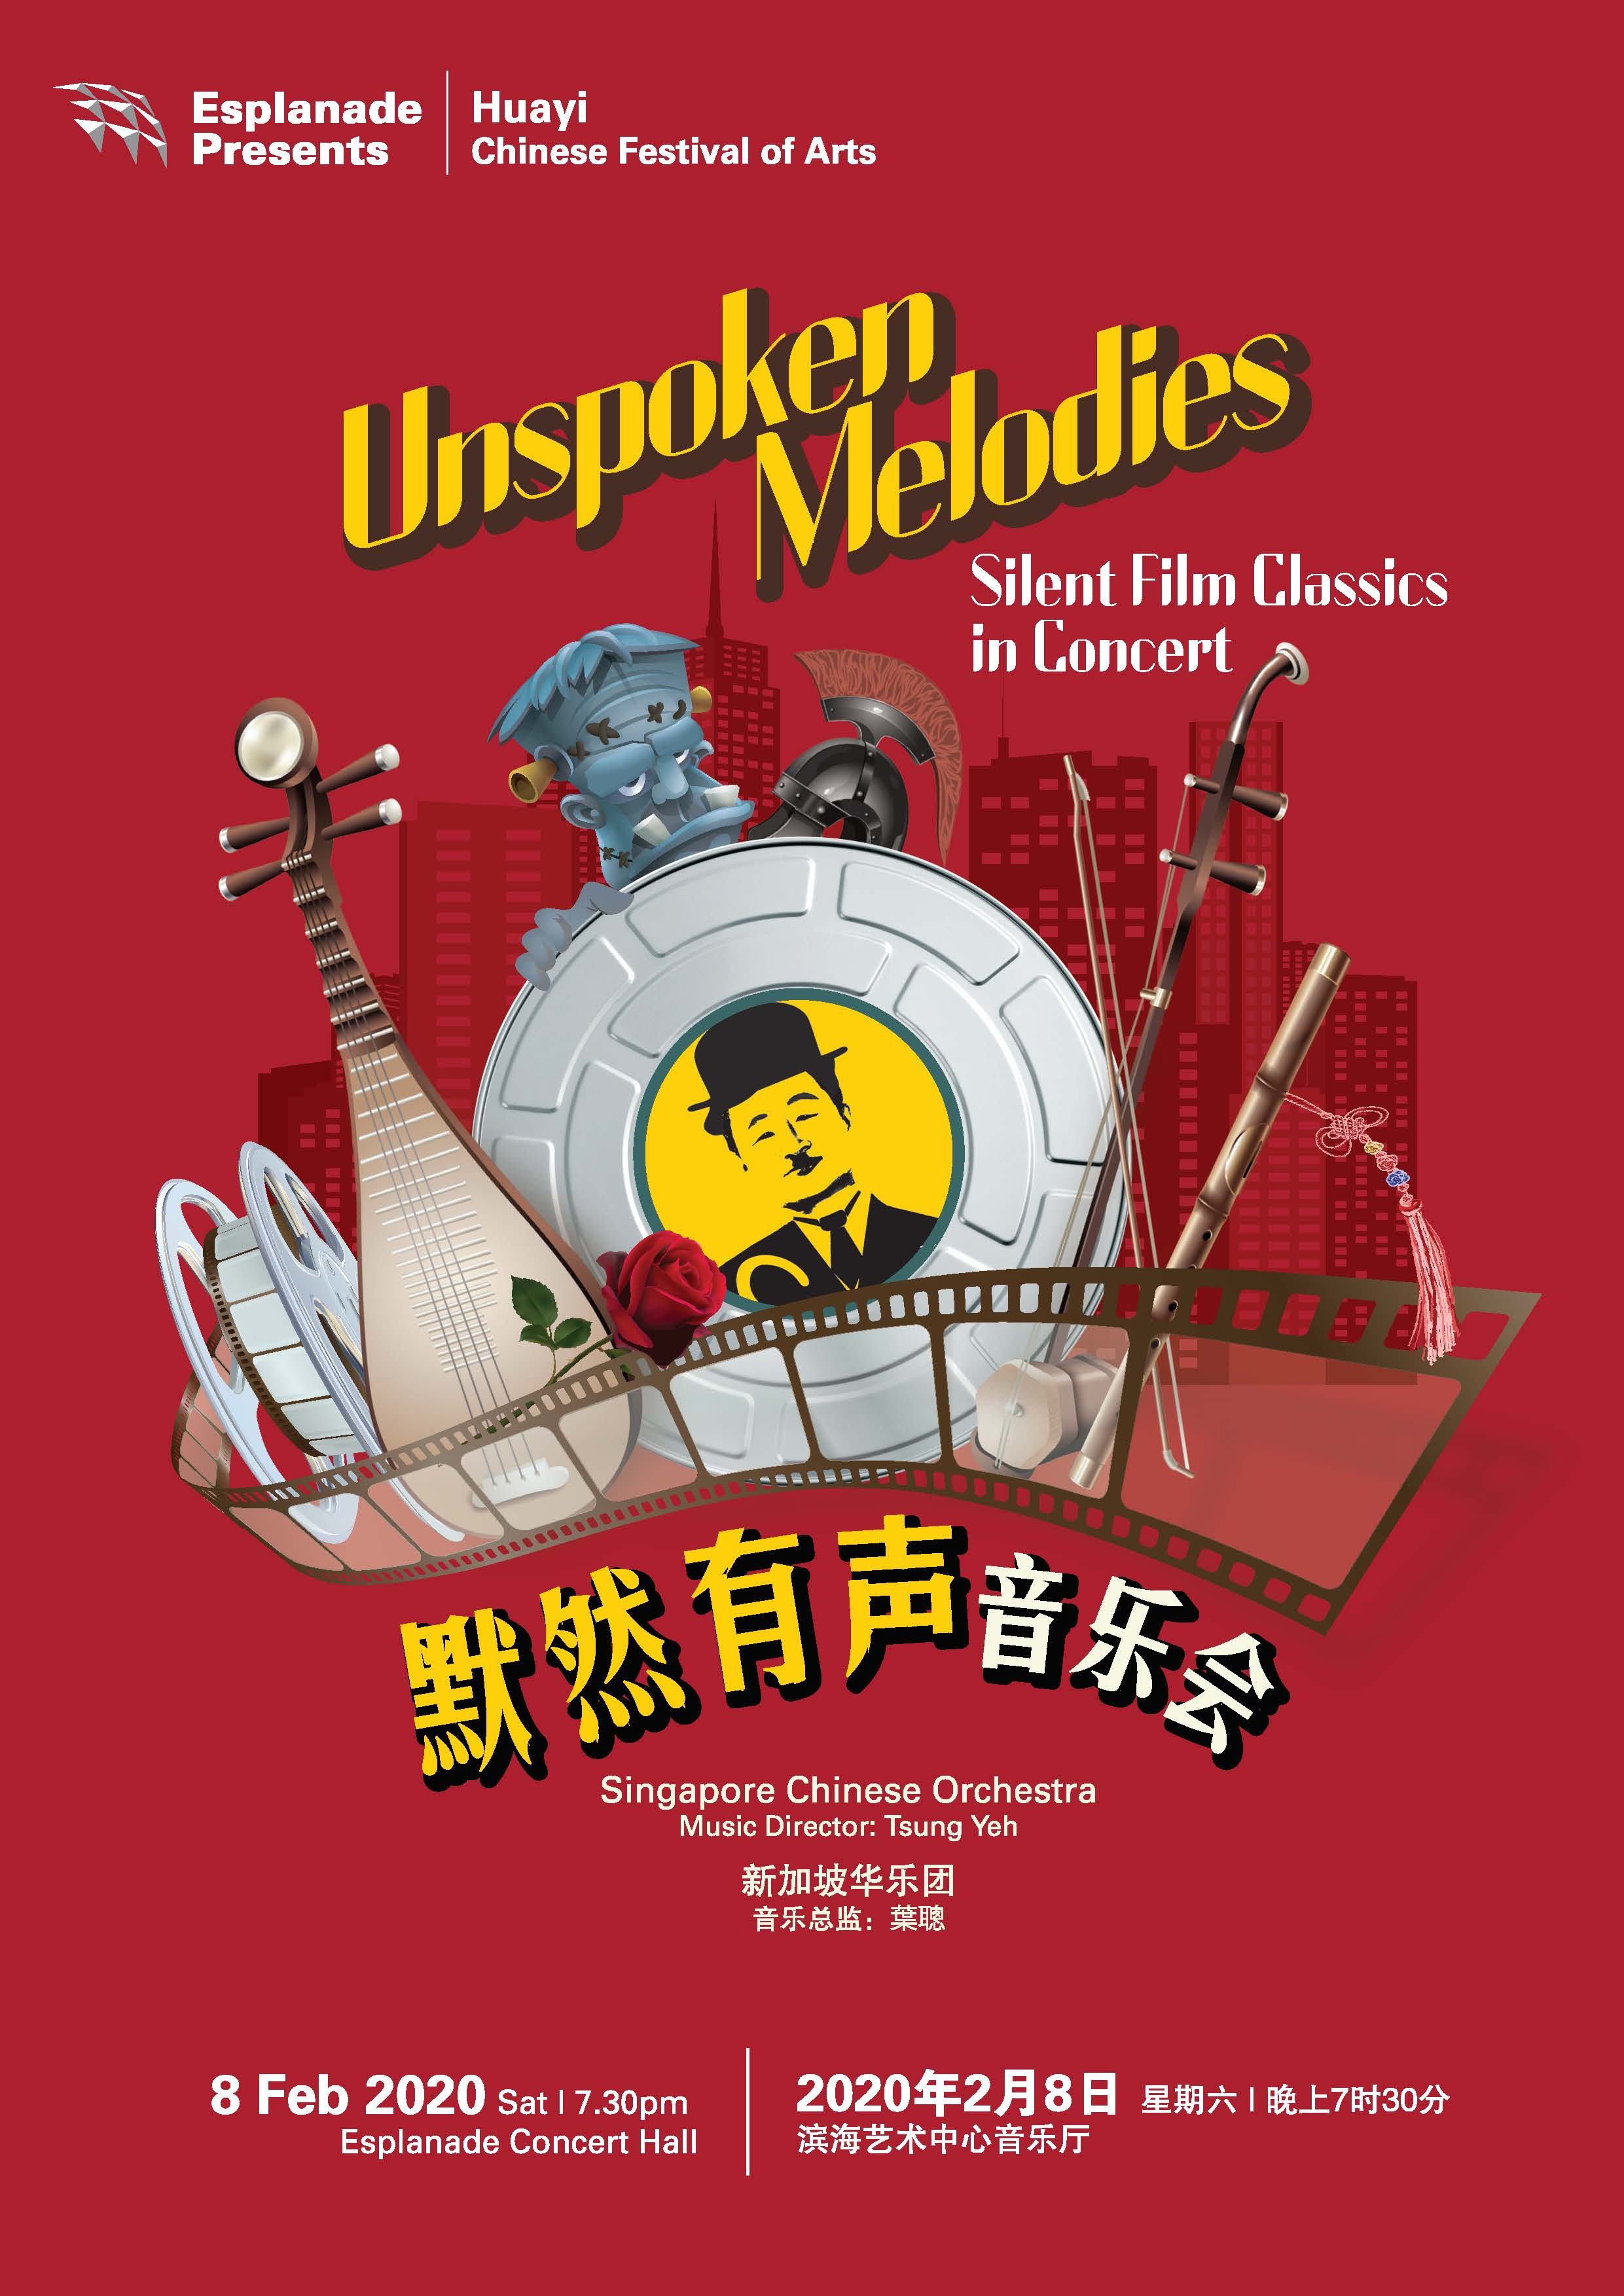 Unspoken Melodies - Silent Film Classics in Concert